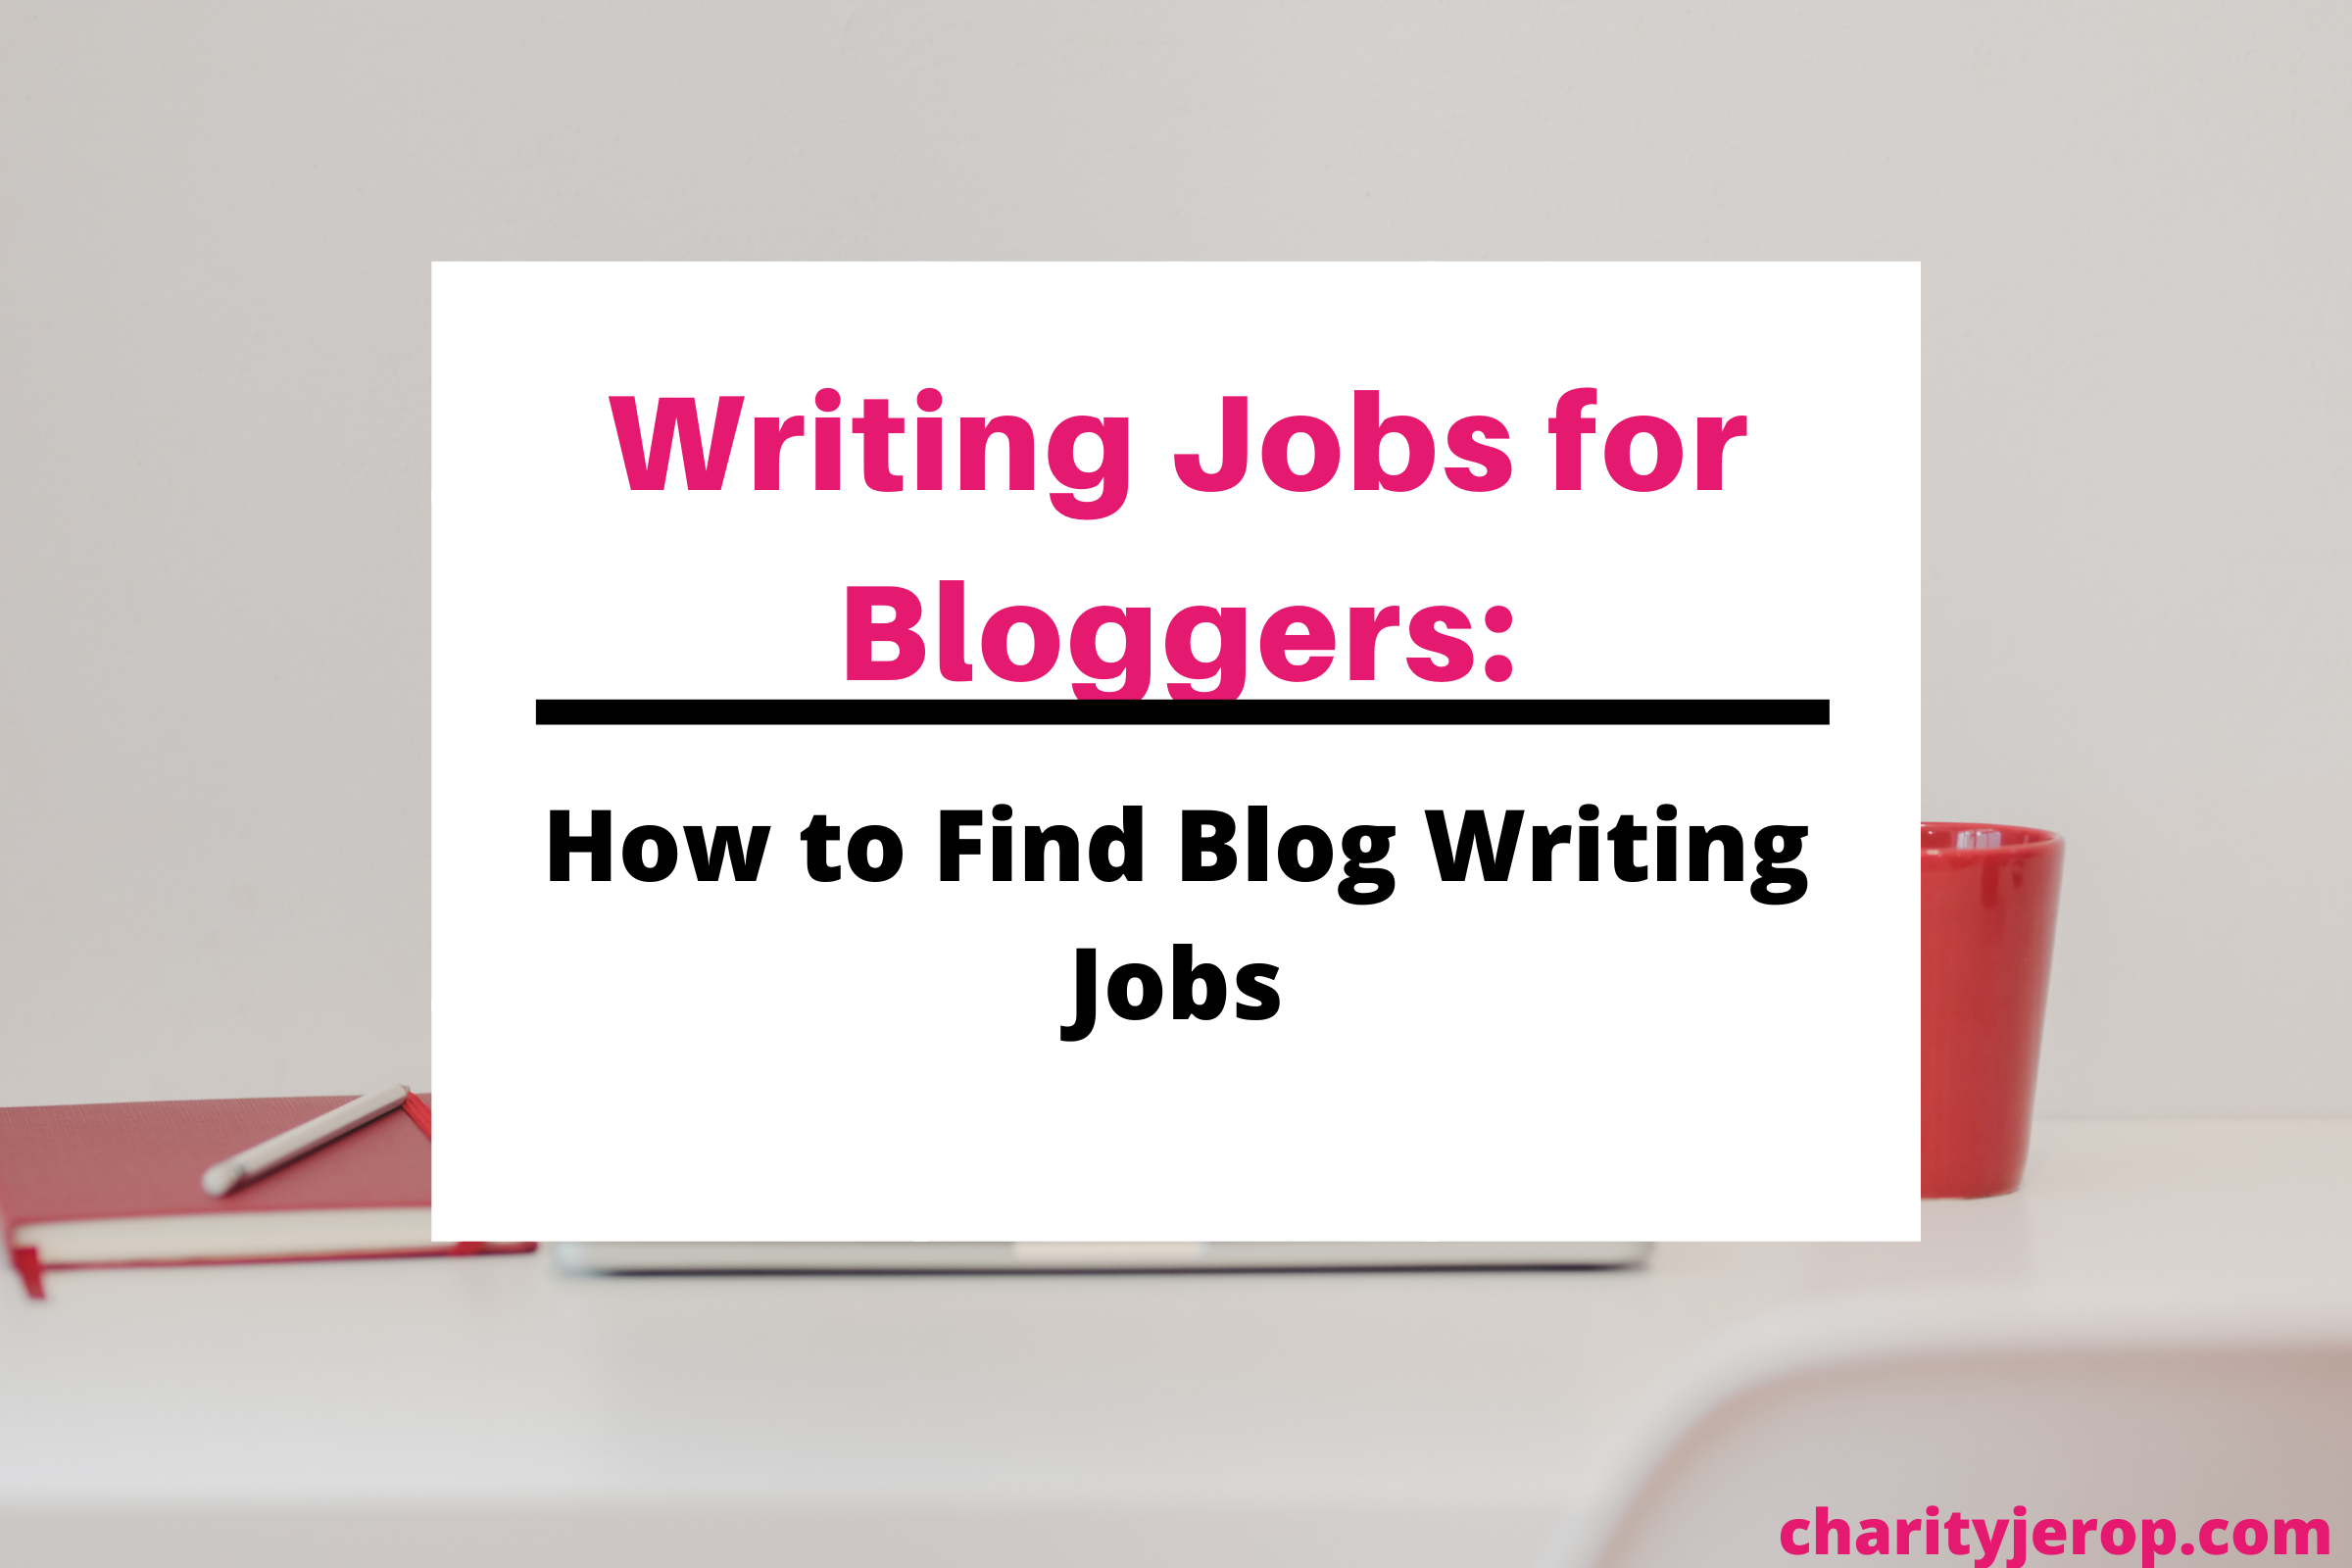 Writing jobs for bloggers